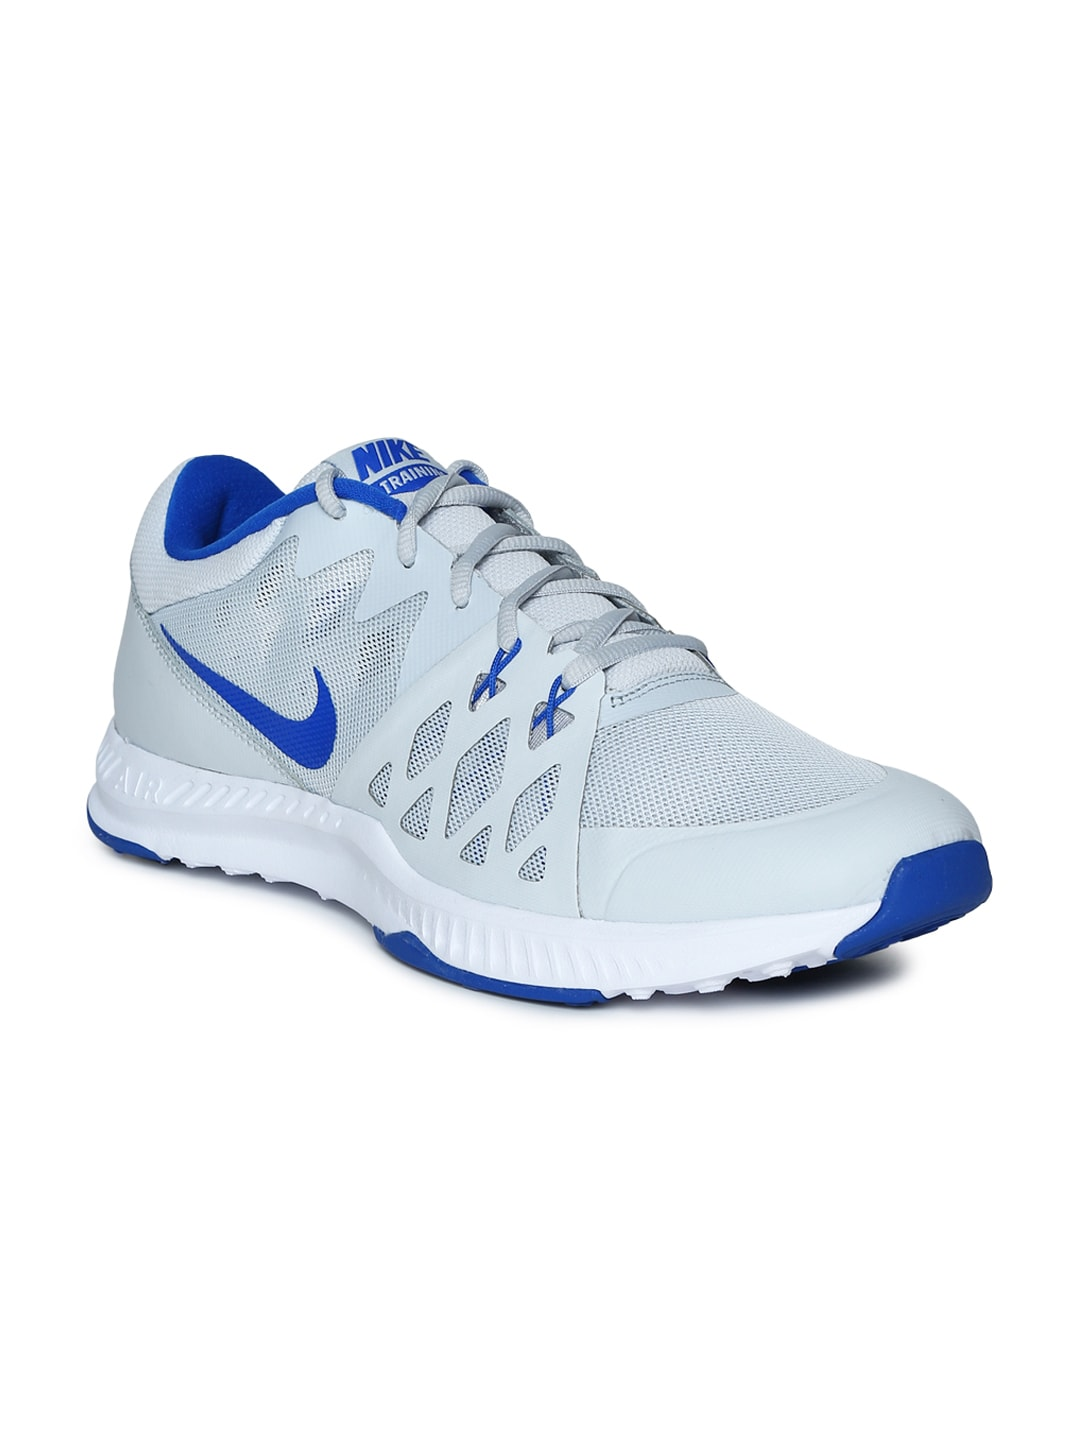 Buy Nike Shoe At Sport Price Shoes Best OnlineMyntra kiXZPu